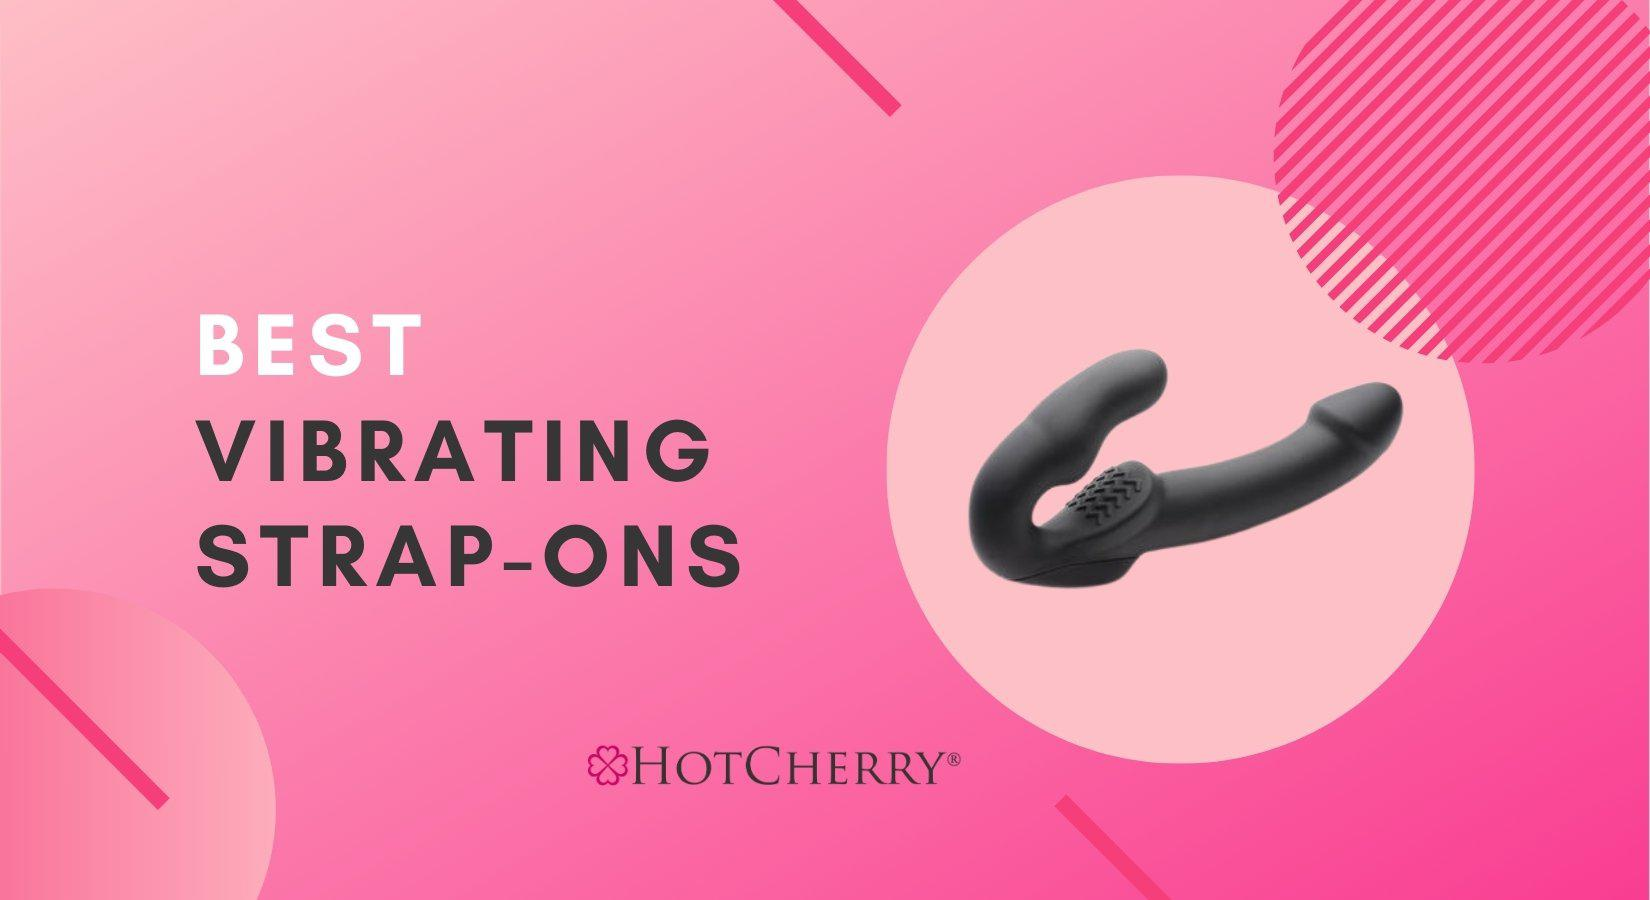 Best Vibrating Strap-Ons